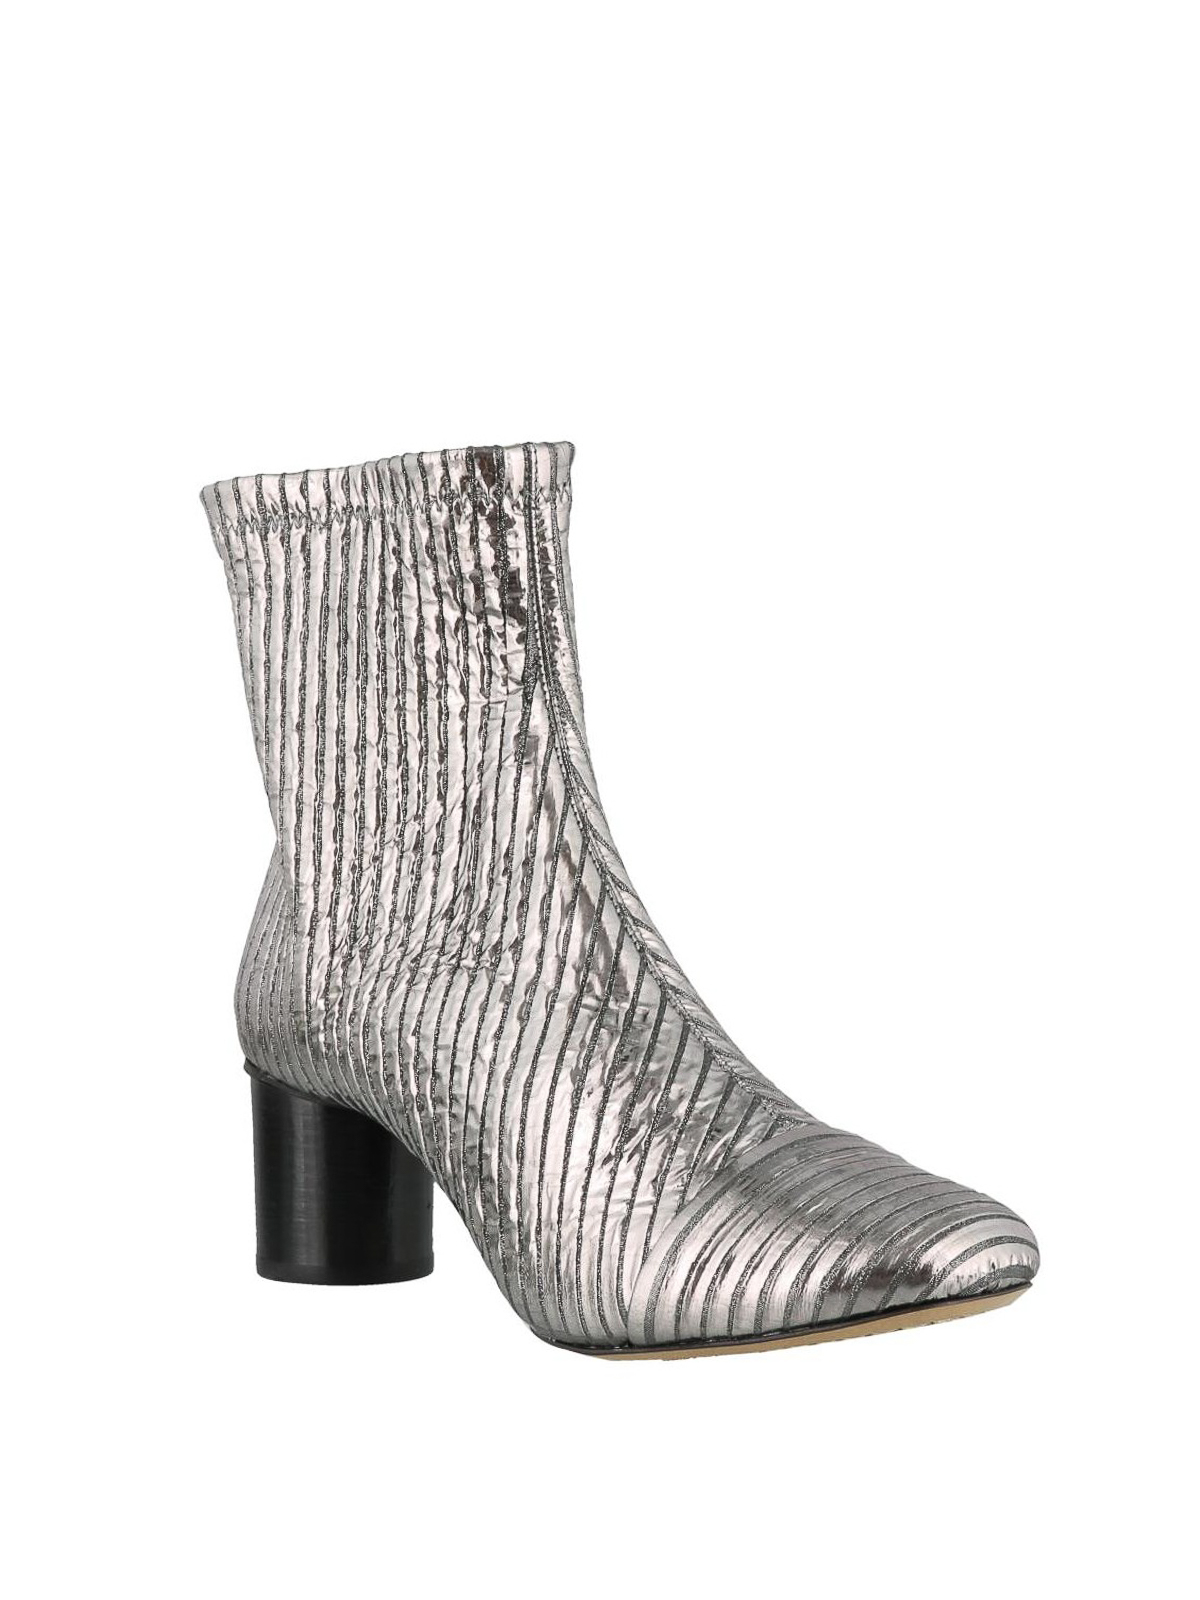 b0eabd03b16 ISABEL MARANT: ankle boots online - Metallic leather Datsy ankle boots